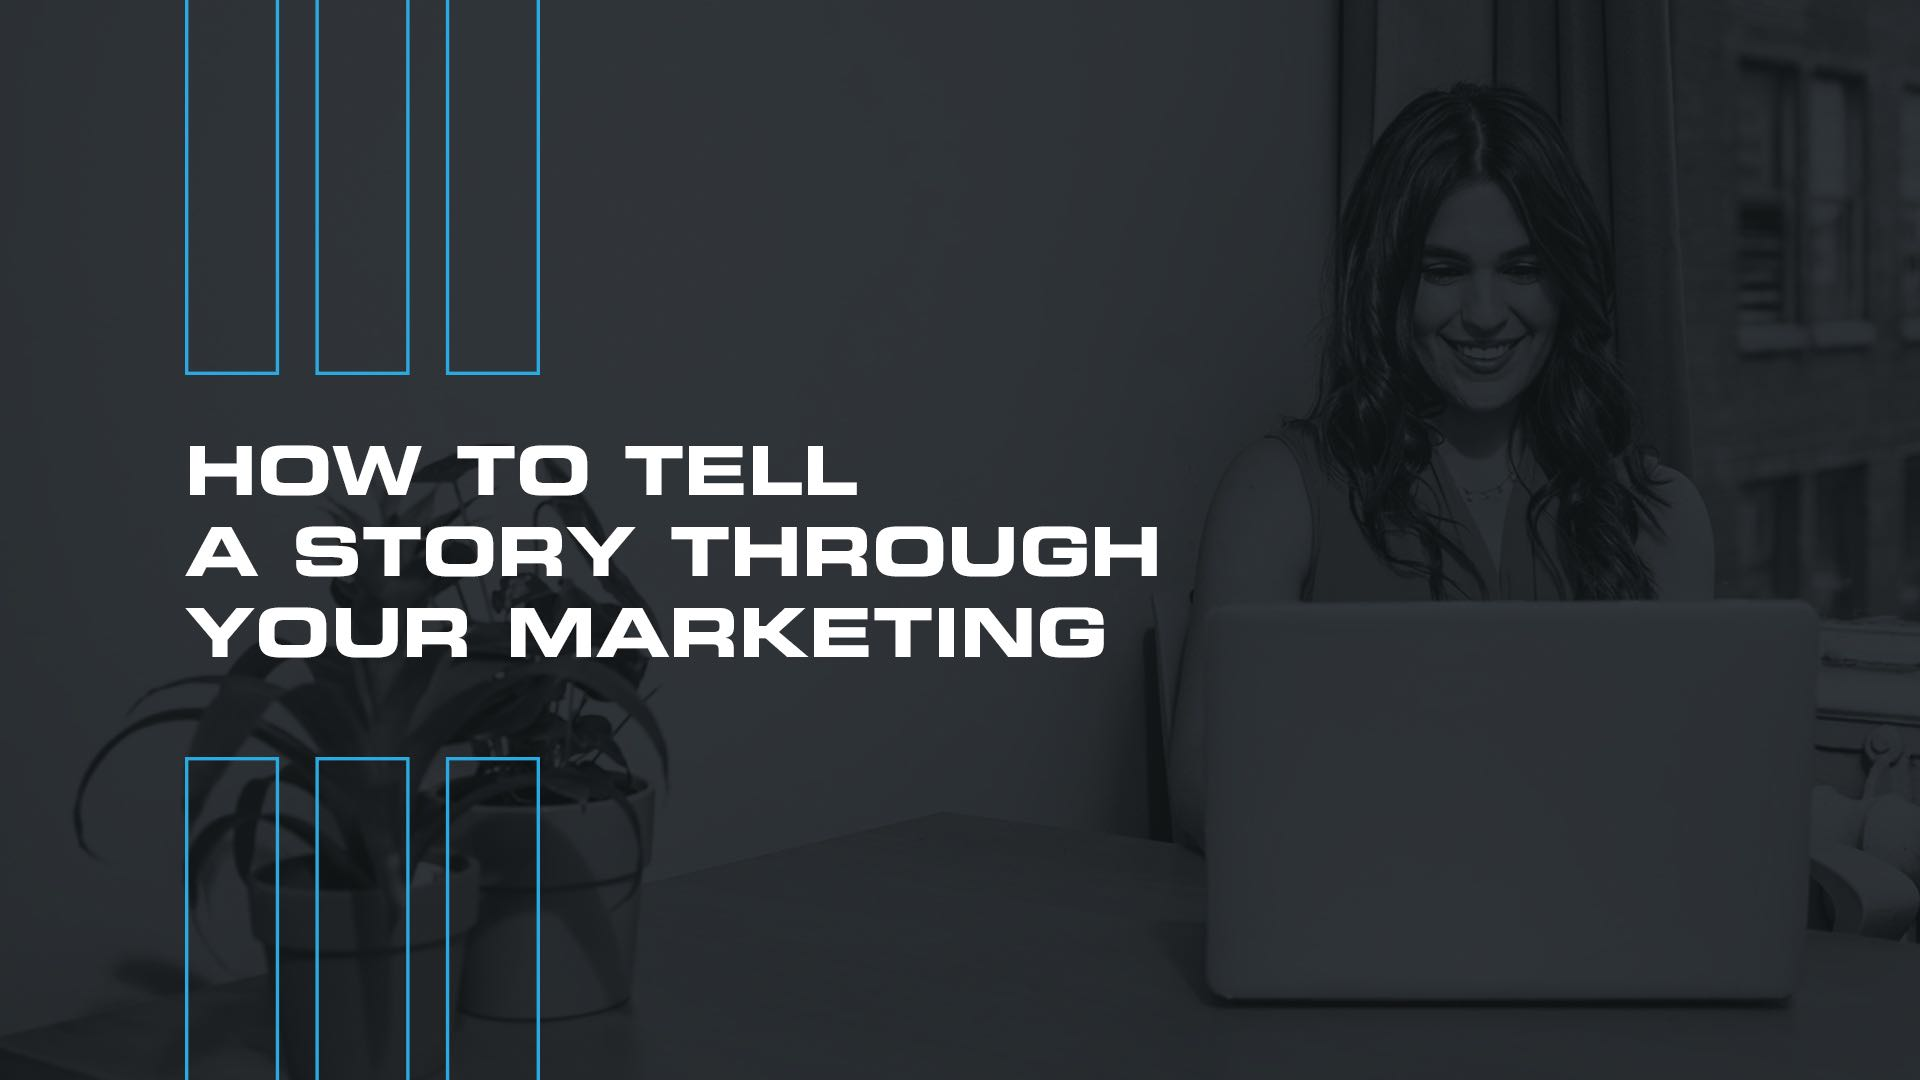 How to Tell a Story Through Your Marketing